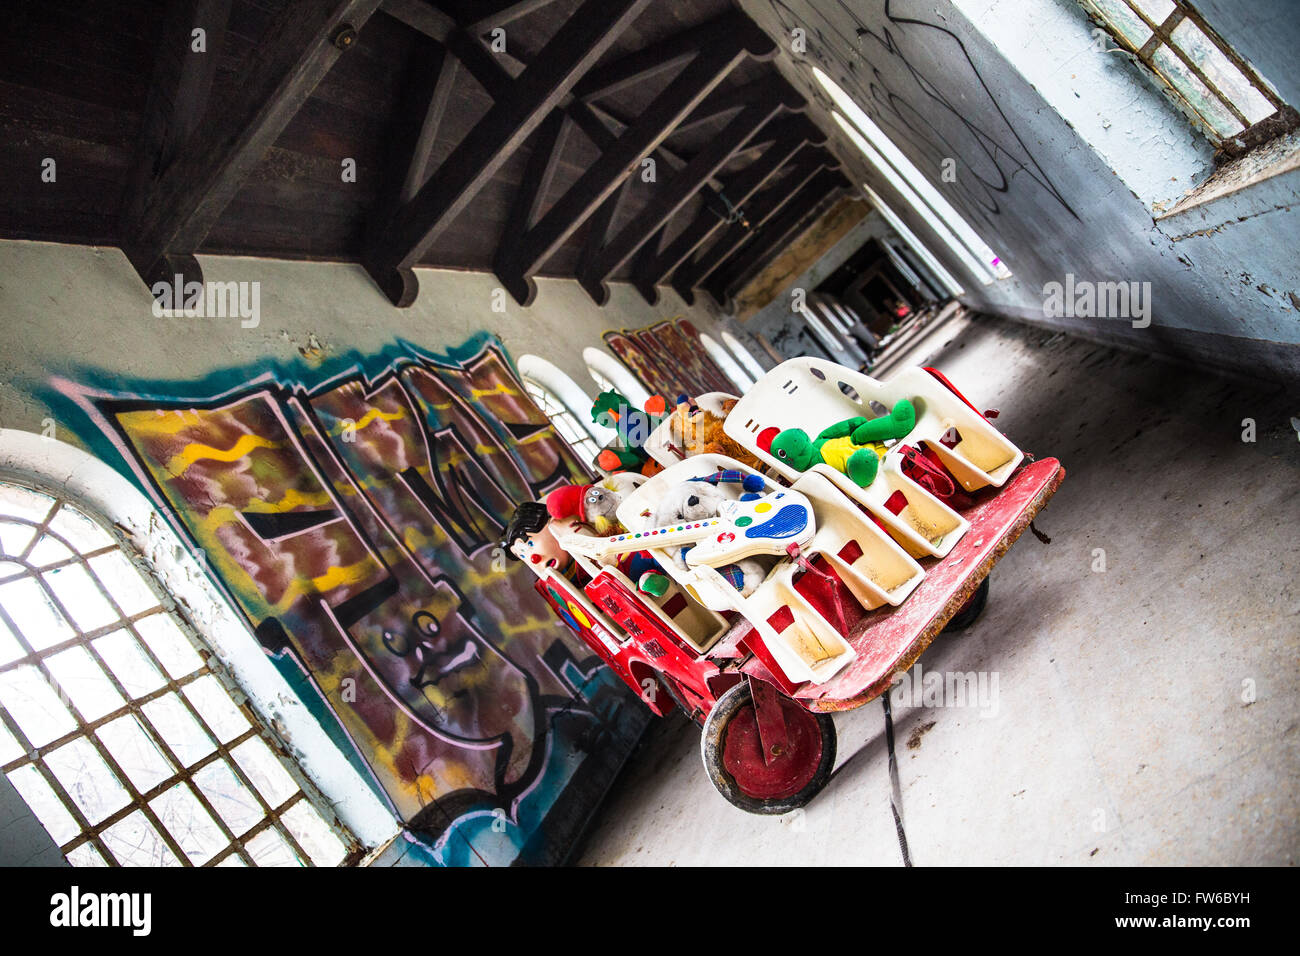 Orangeburg, New York, USA - February 17, 2016: Eerie scene with cart full of toys  inside abandoned children's - Stock Image